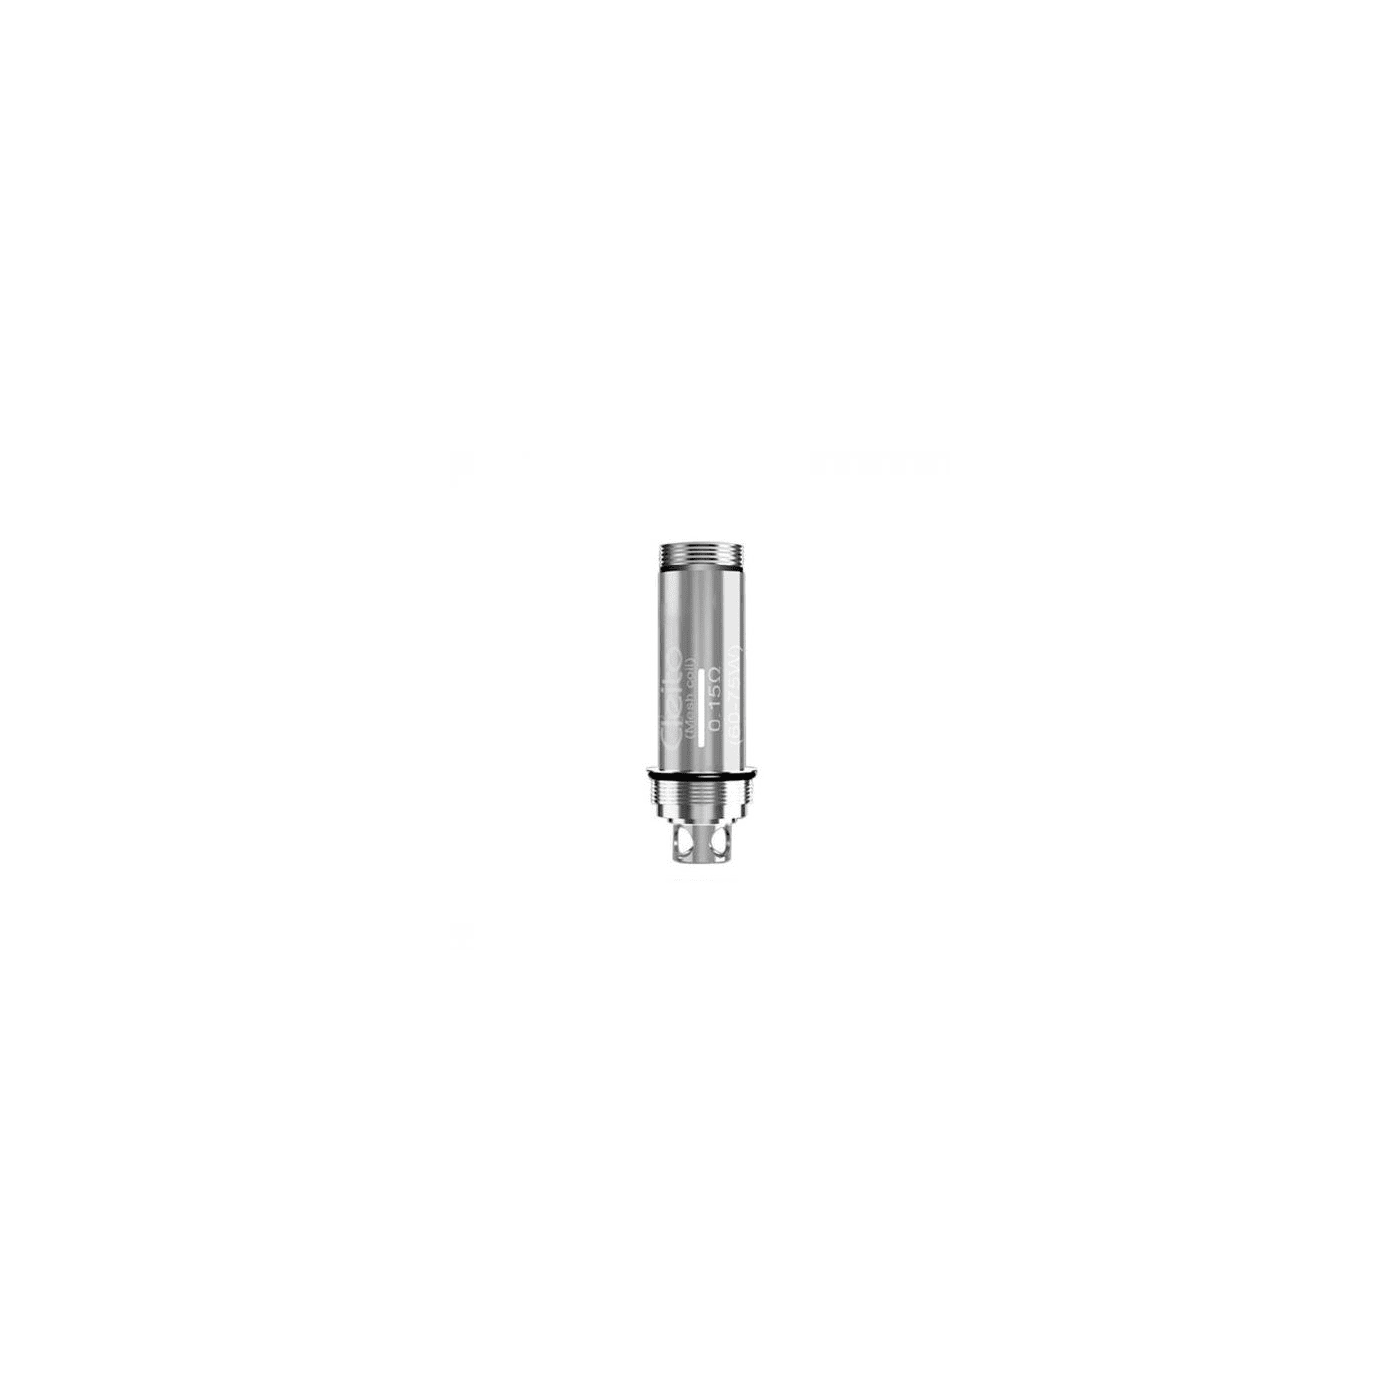 Aspire Cleito Mesh Replacement Coil - 5 Pack